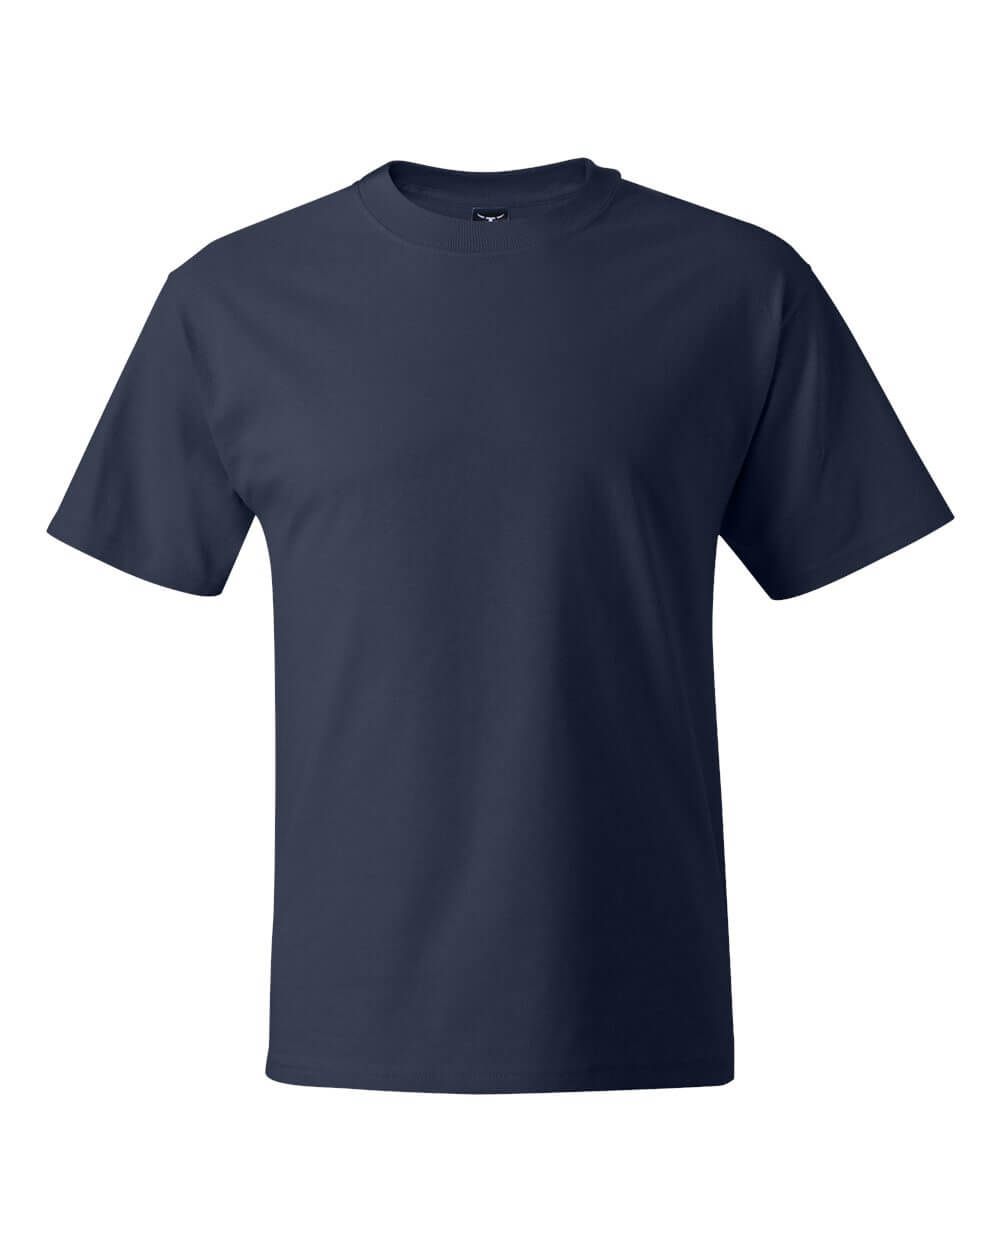 Hanes_5180_Navy Blue Custom T Shirts